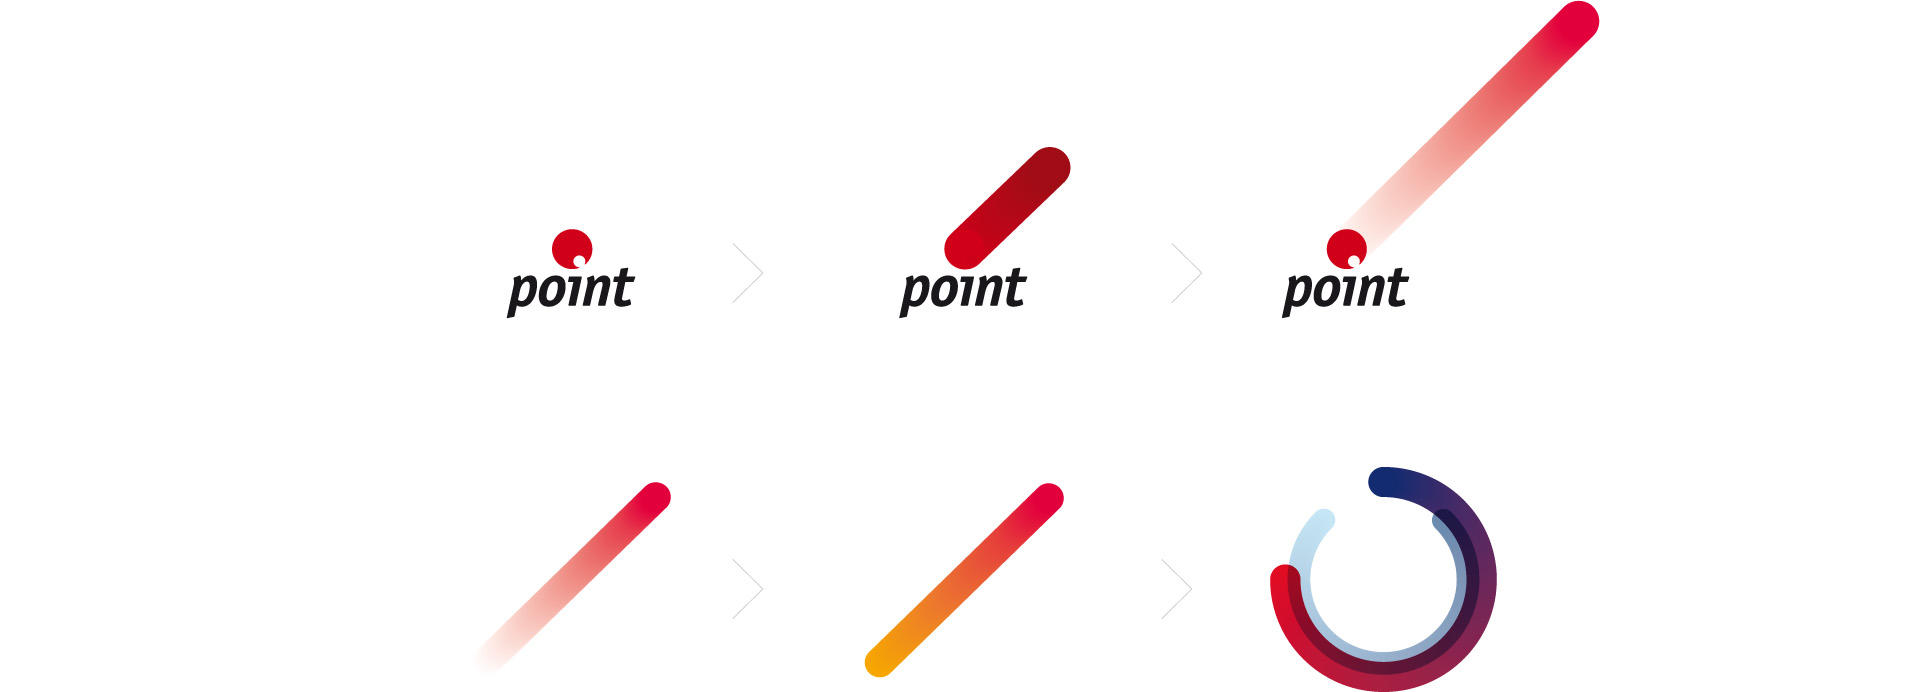 POINT_reference_02_01